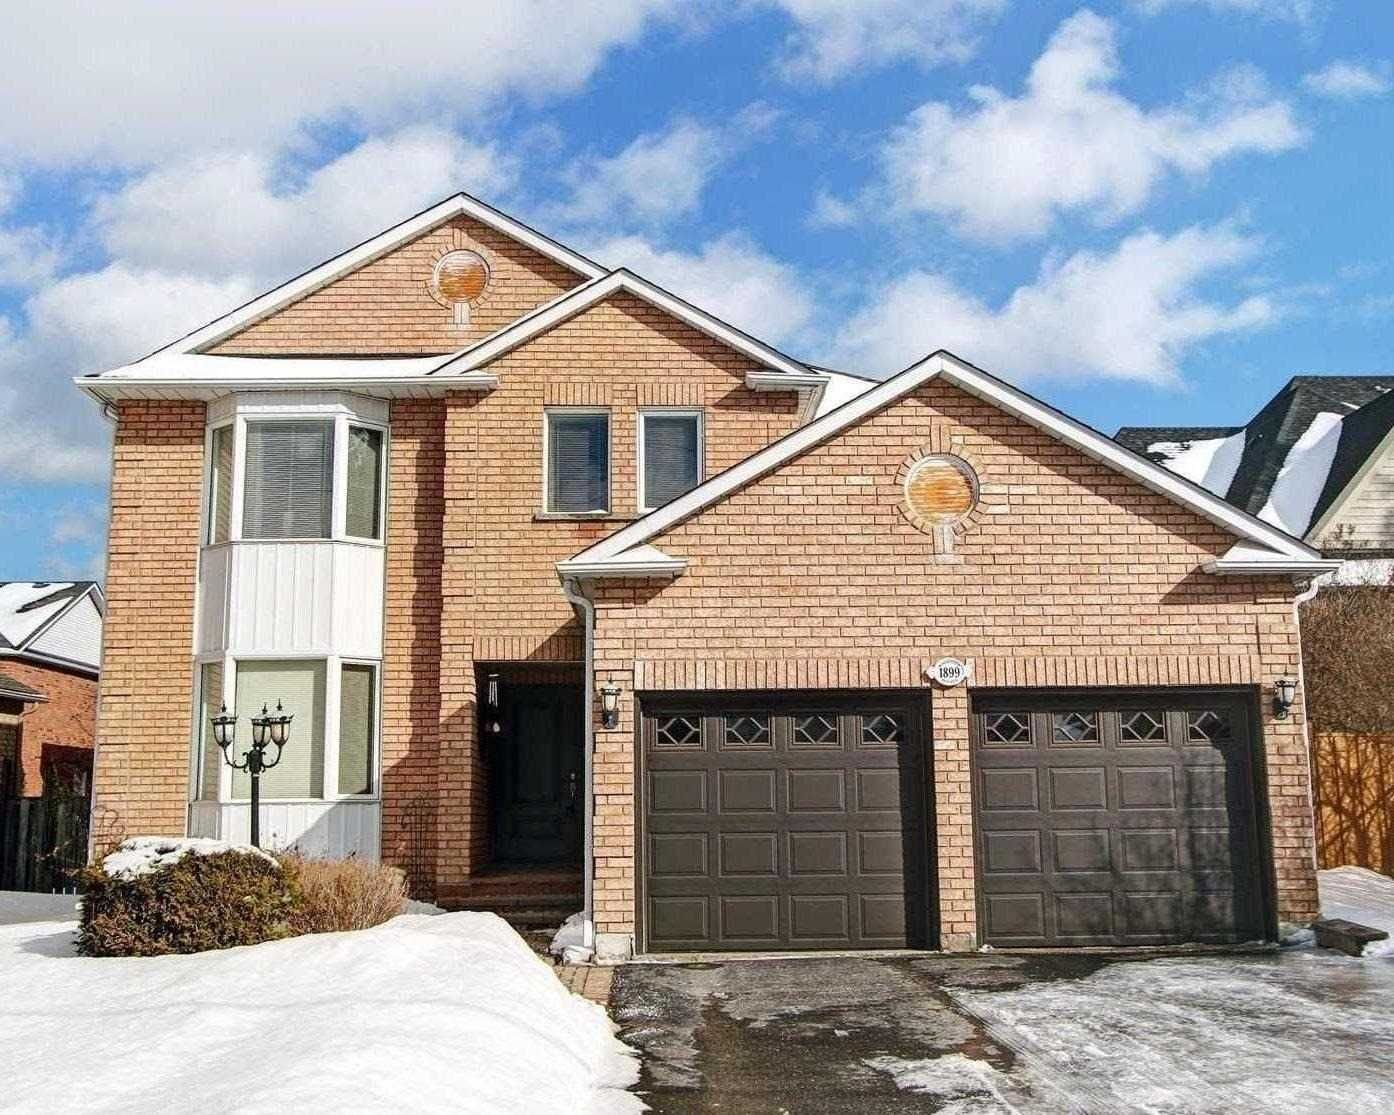 Main Photo: 1899 Woodview Ave in Pickering: Freehold for sale : MLS®# E4359146